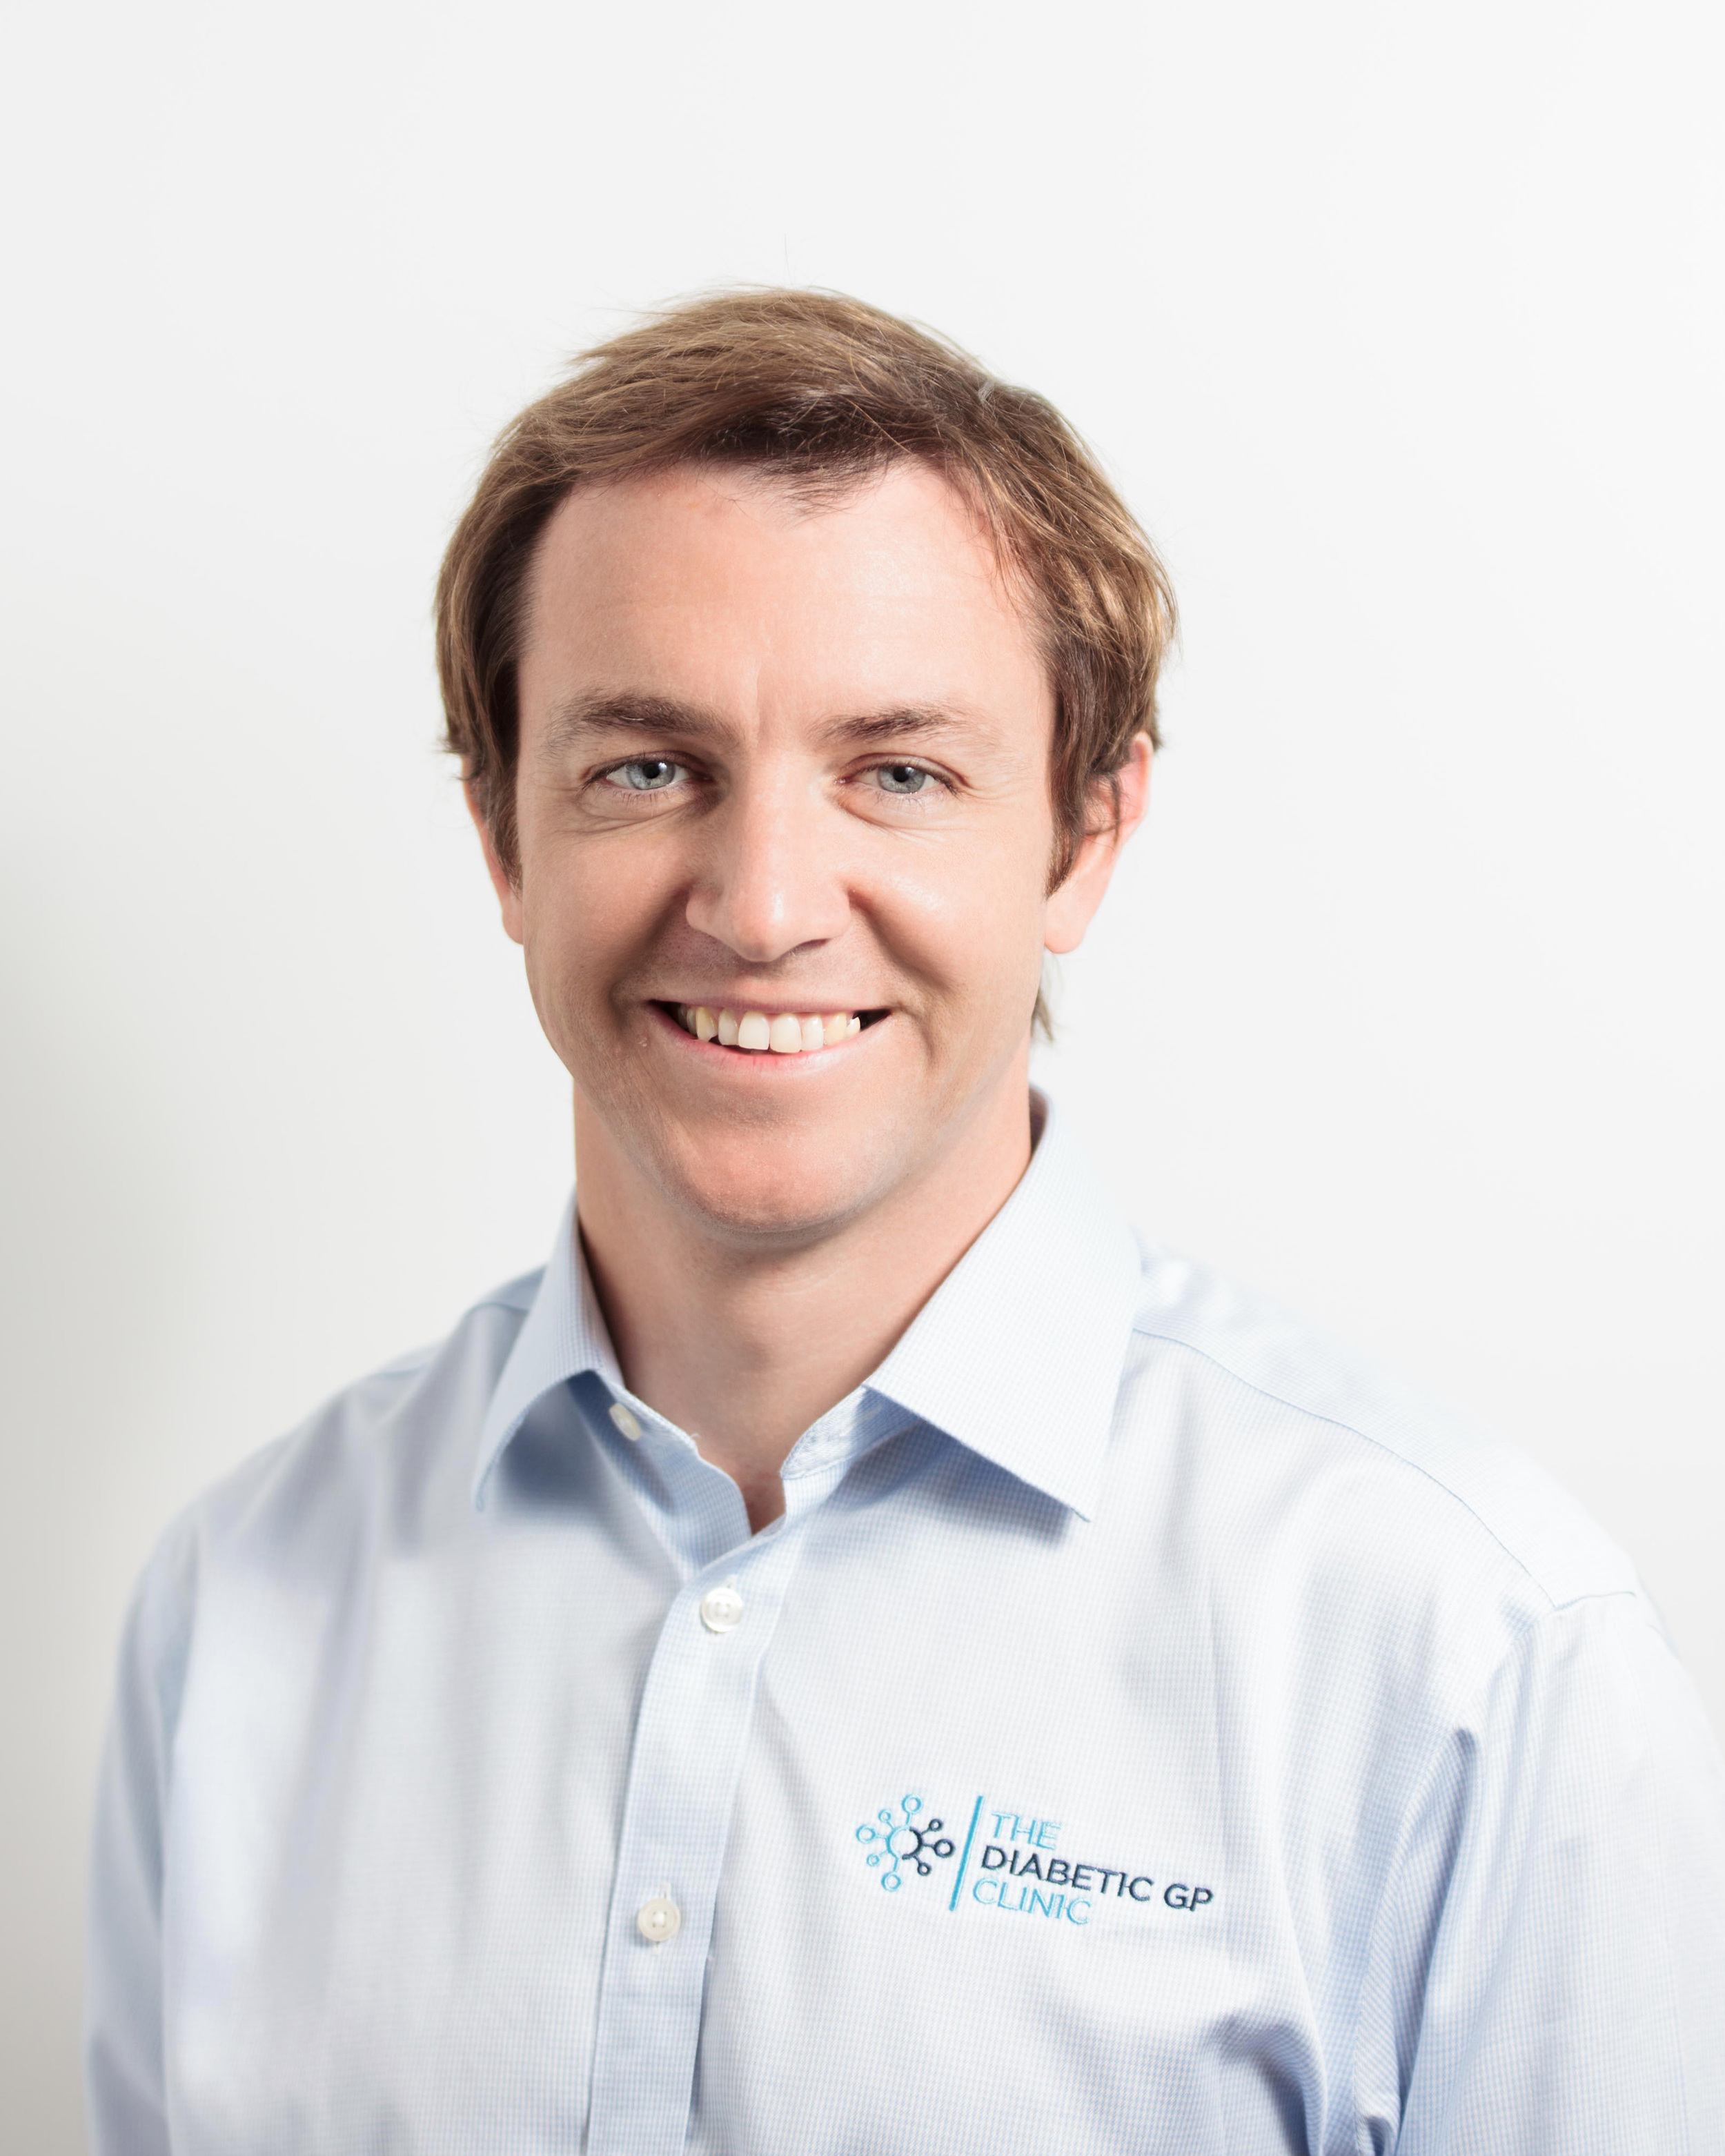 Doctor Kenny Clark is a diabetes focused GP based at the Diabetic GP medical centre in Hyde Park